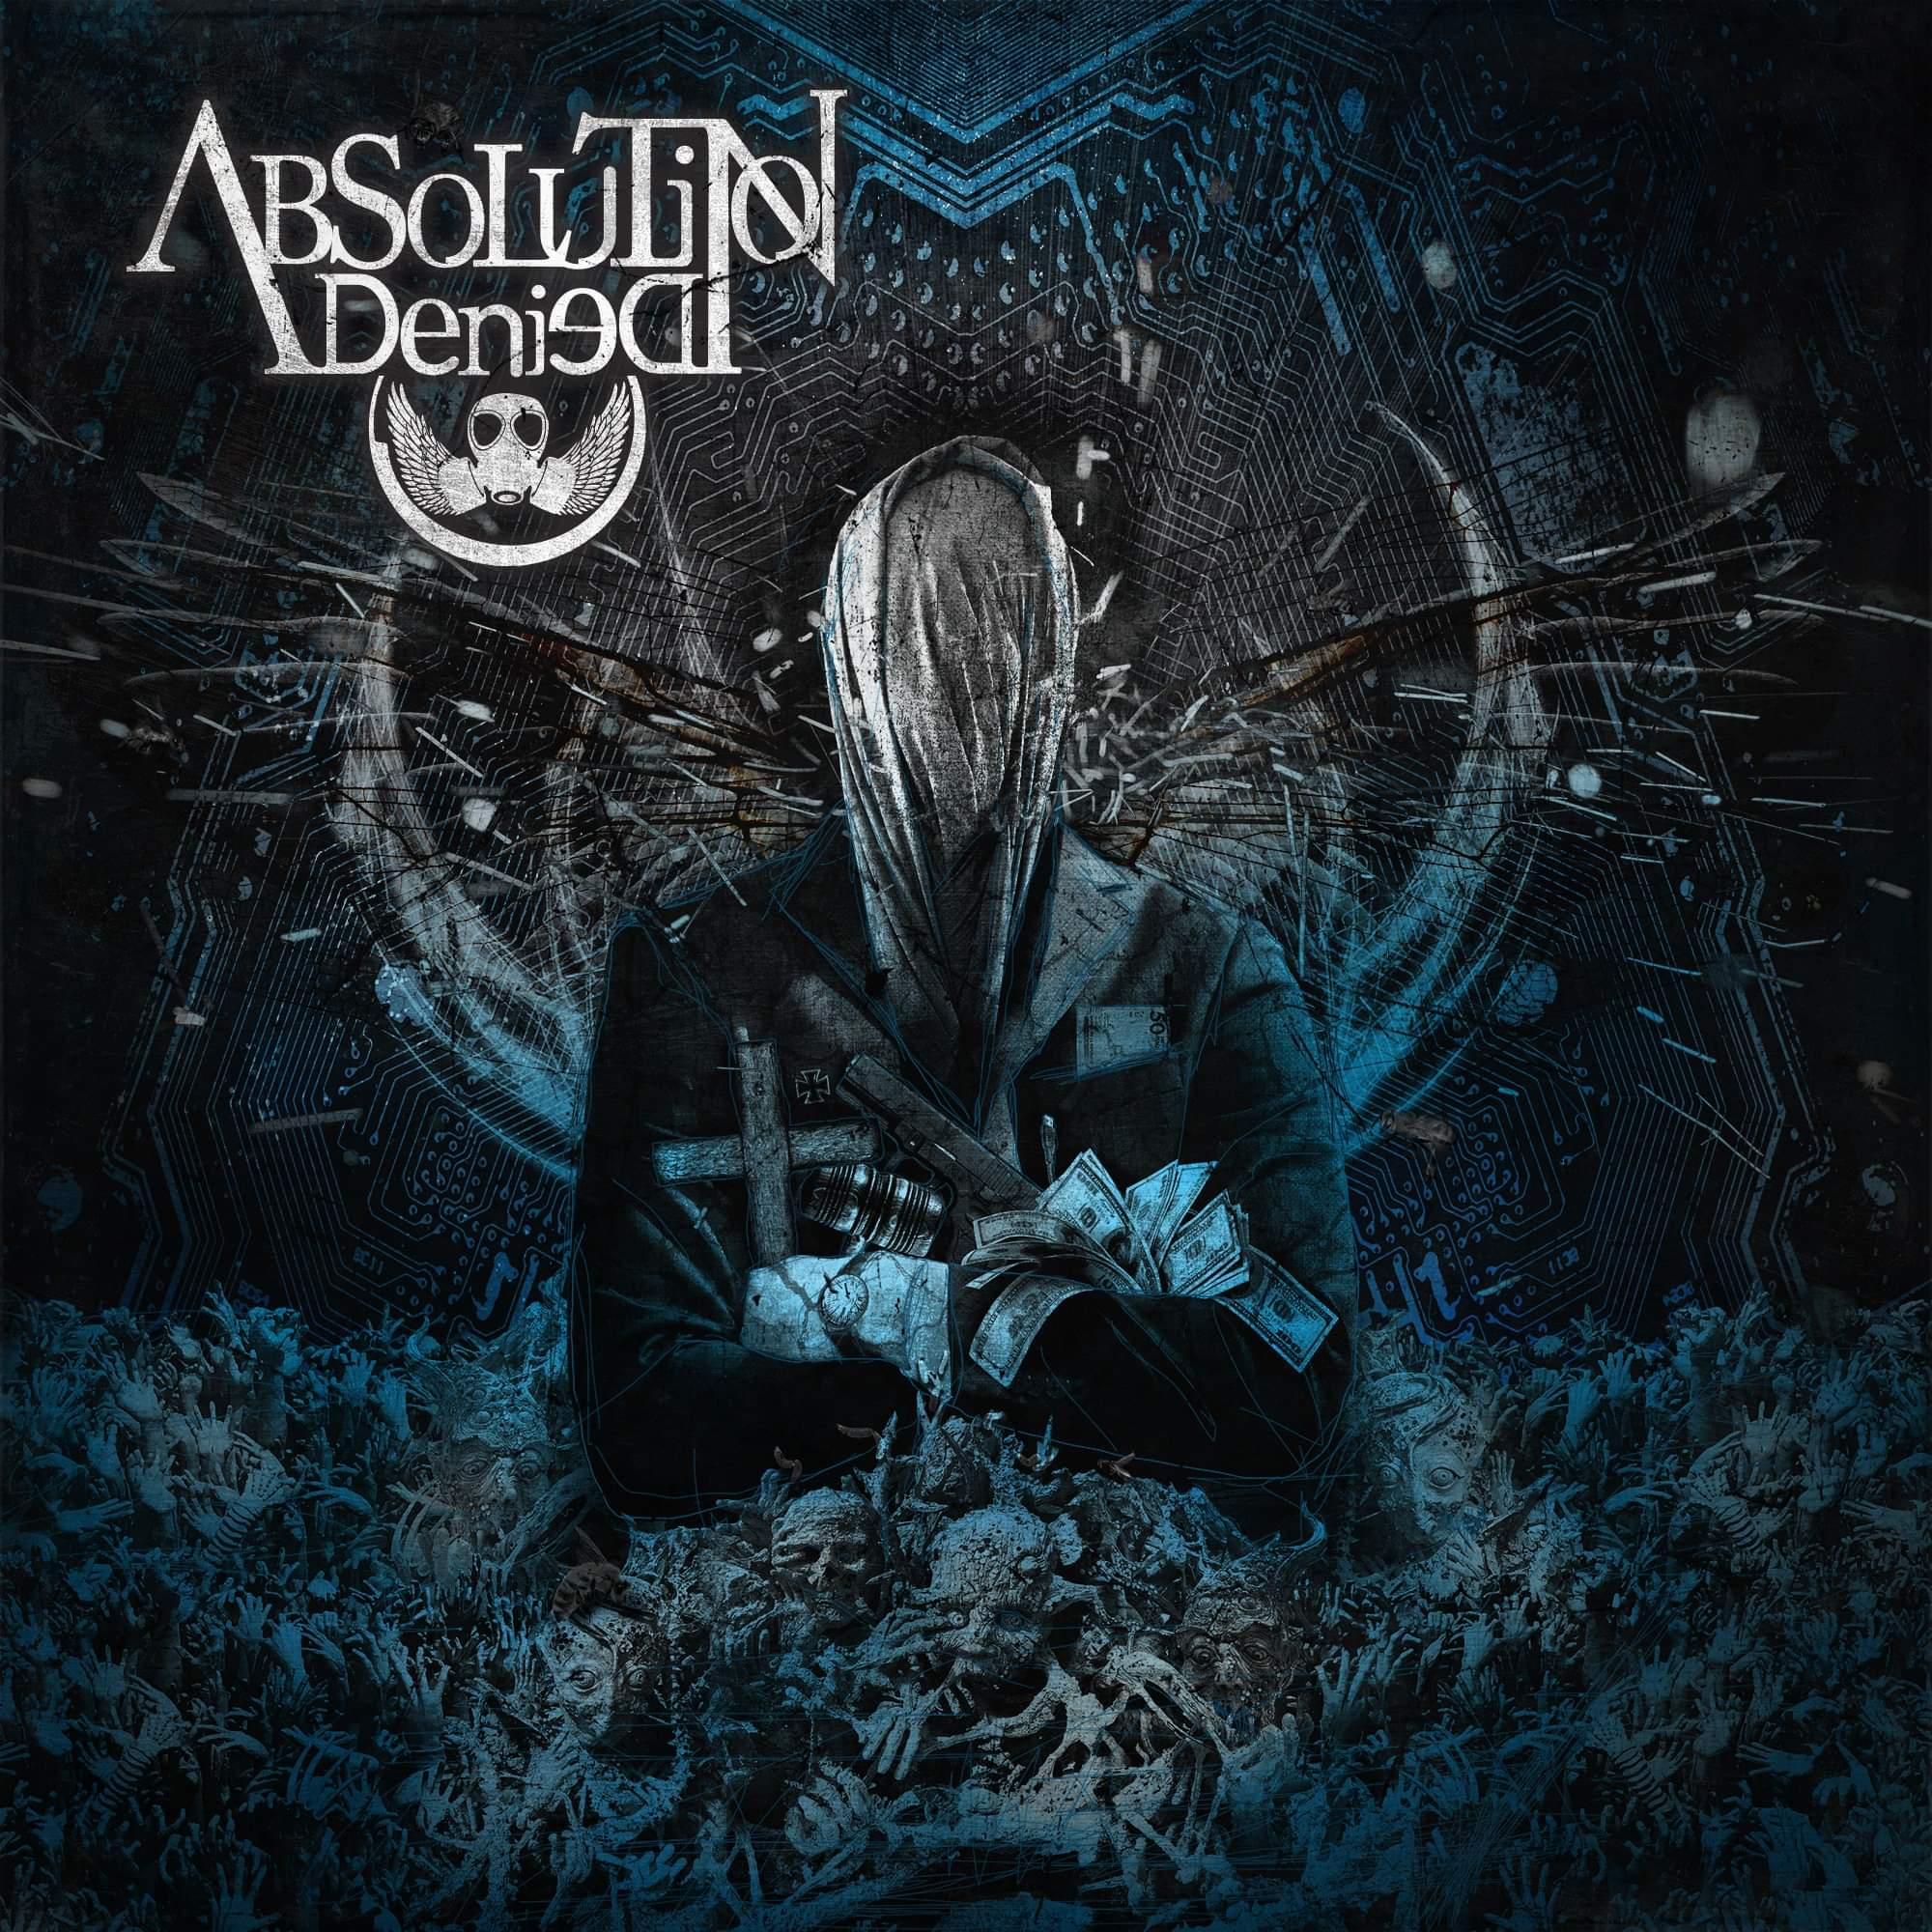 Absolution Denied - Absolution Denied